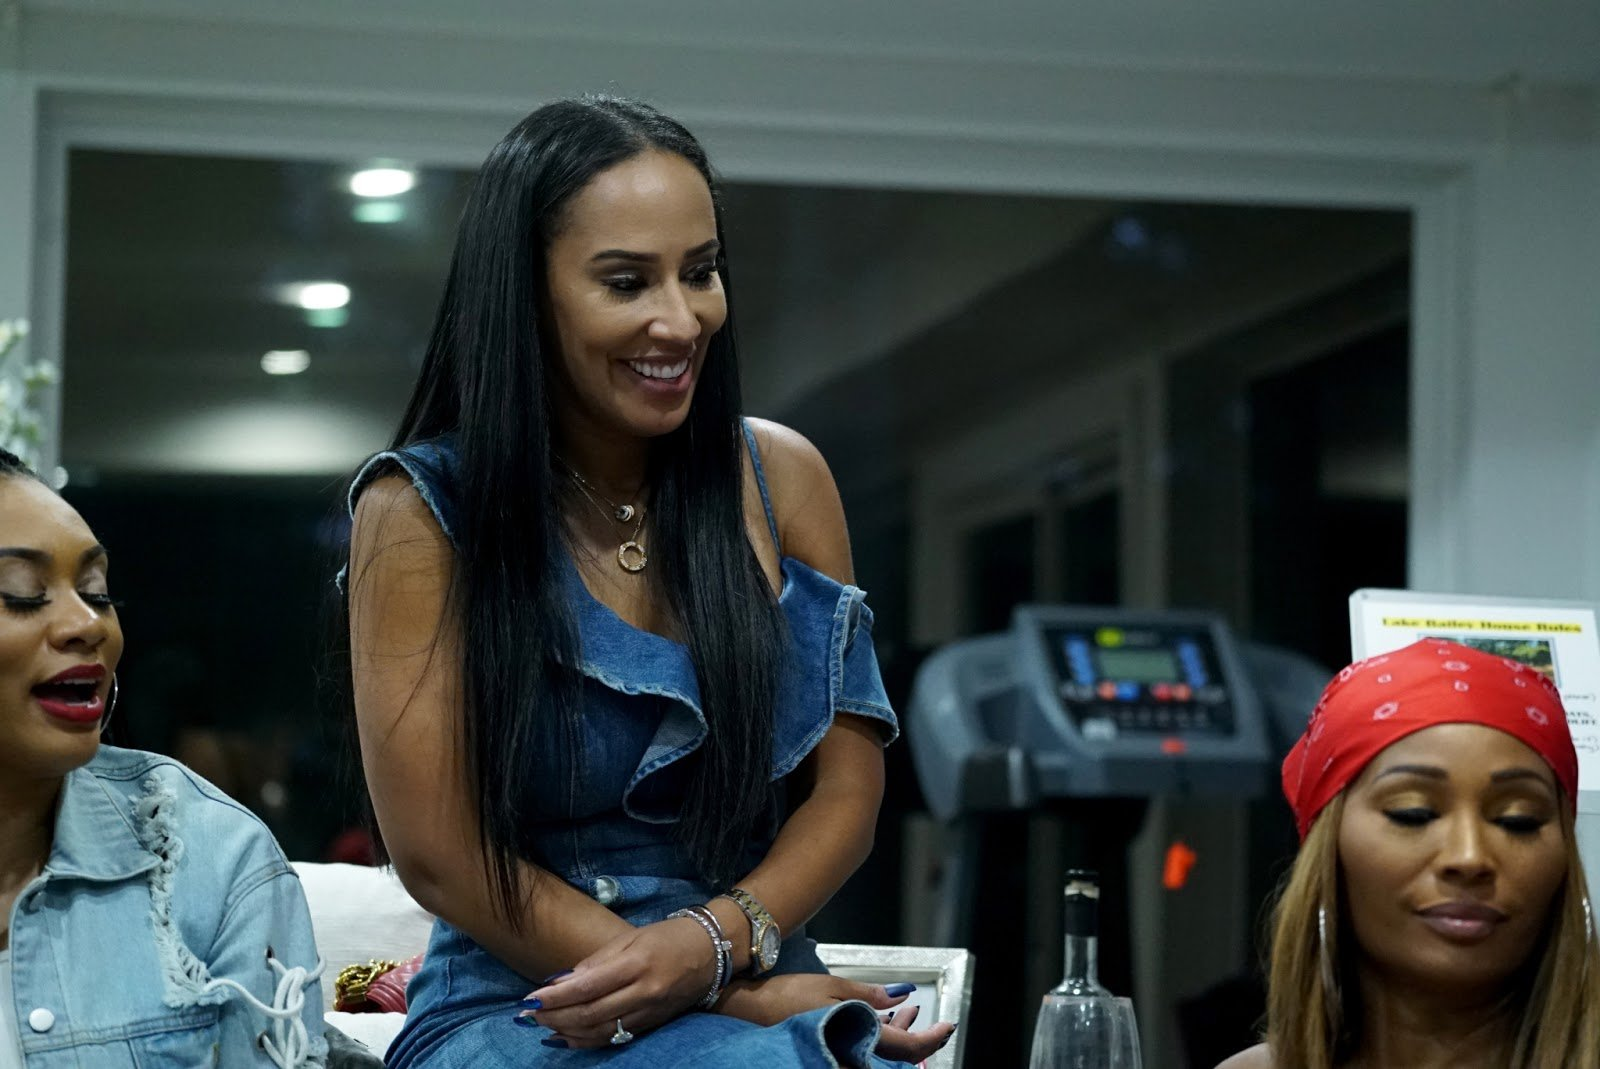 A New Housewife Made Her Debut On 'Real Housewives Of Atlanta' Last Night!